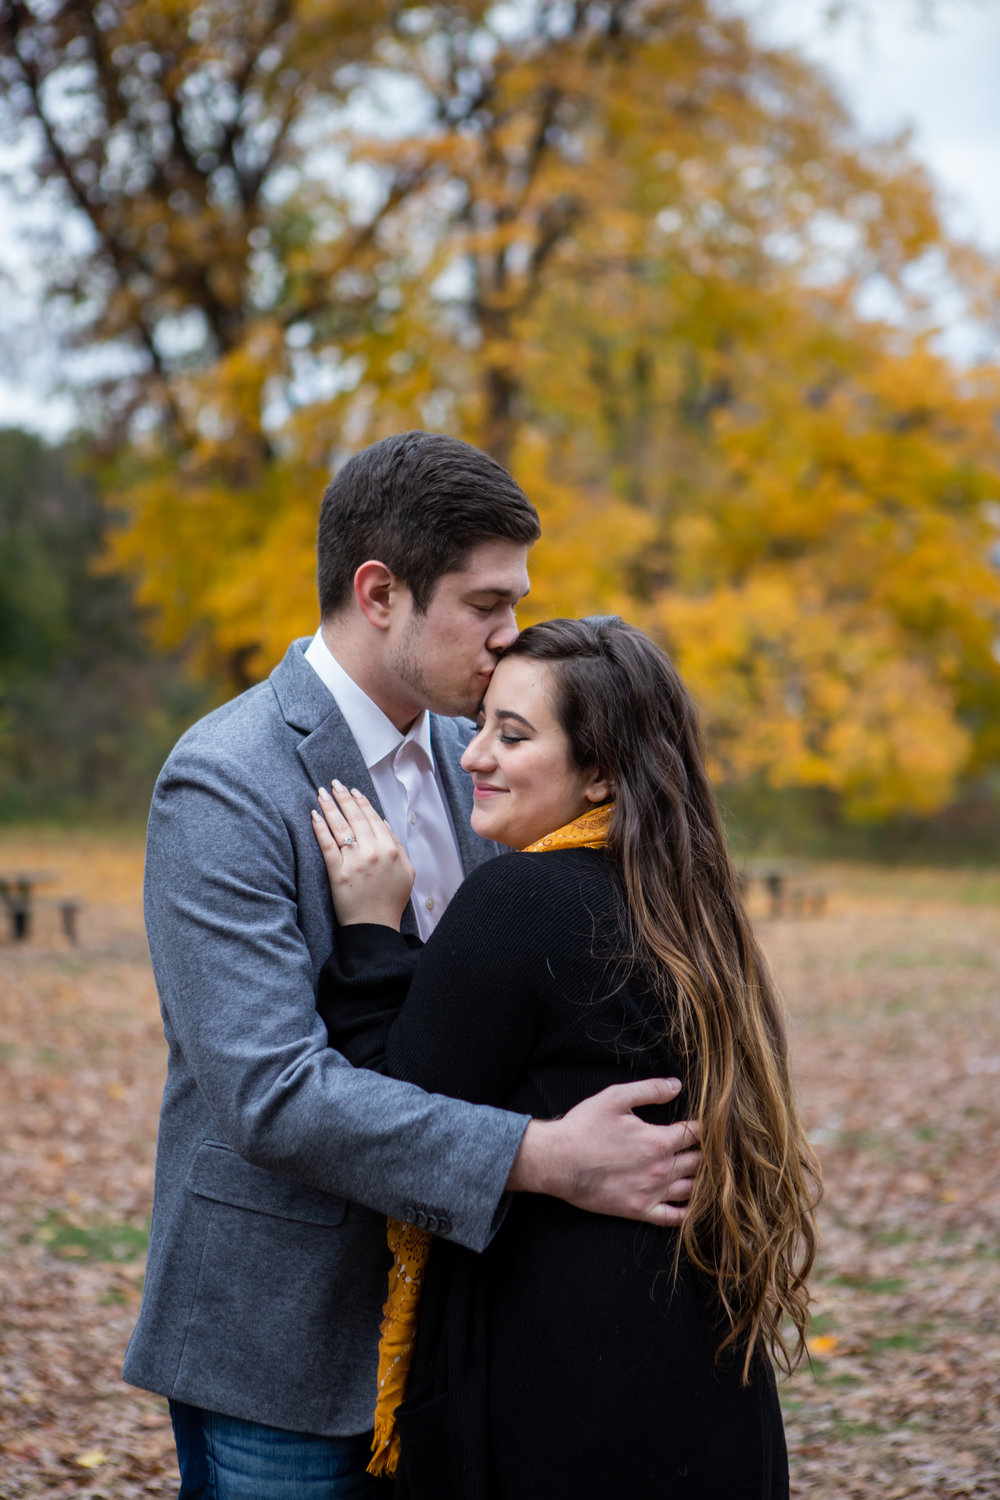 Kate-Alison-Photography-Prospect-Park-Brooklyn-Engagement-Session-Jenna-James-68.jpg